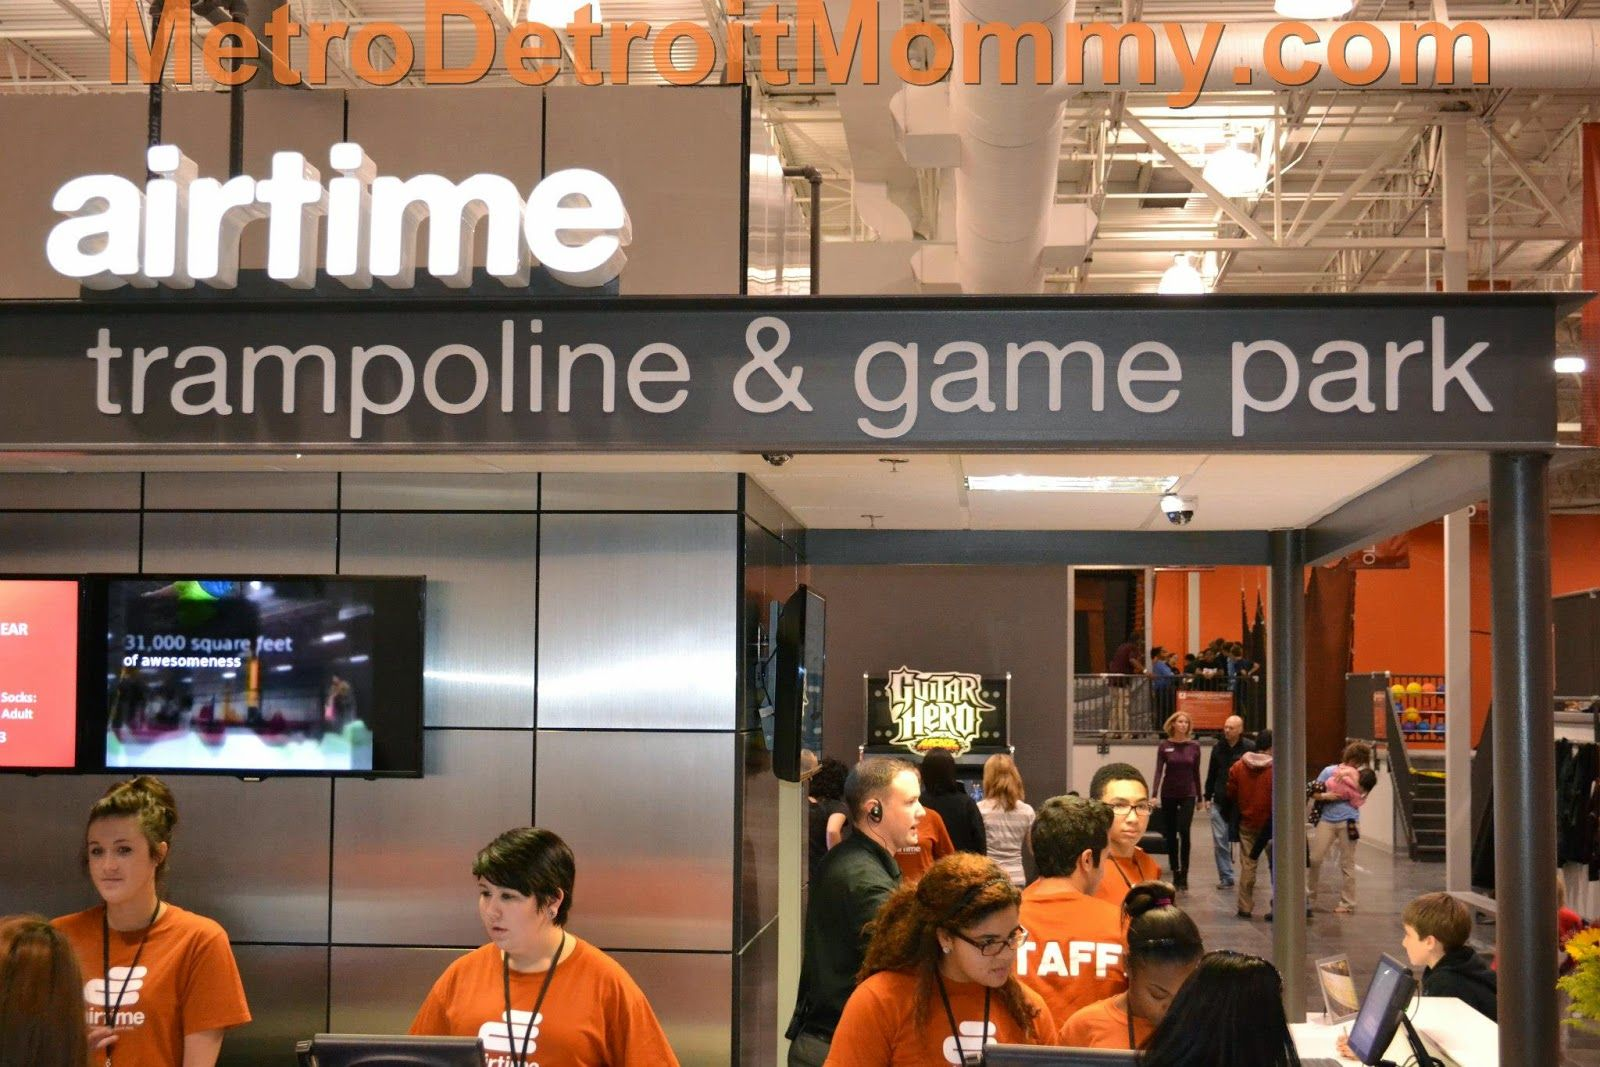 new airtime trampoline game park in canton westland metro detroit places to play. Black Bedroom Furniture Sets. Home Design Ideas